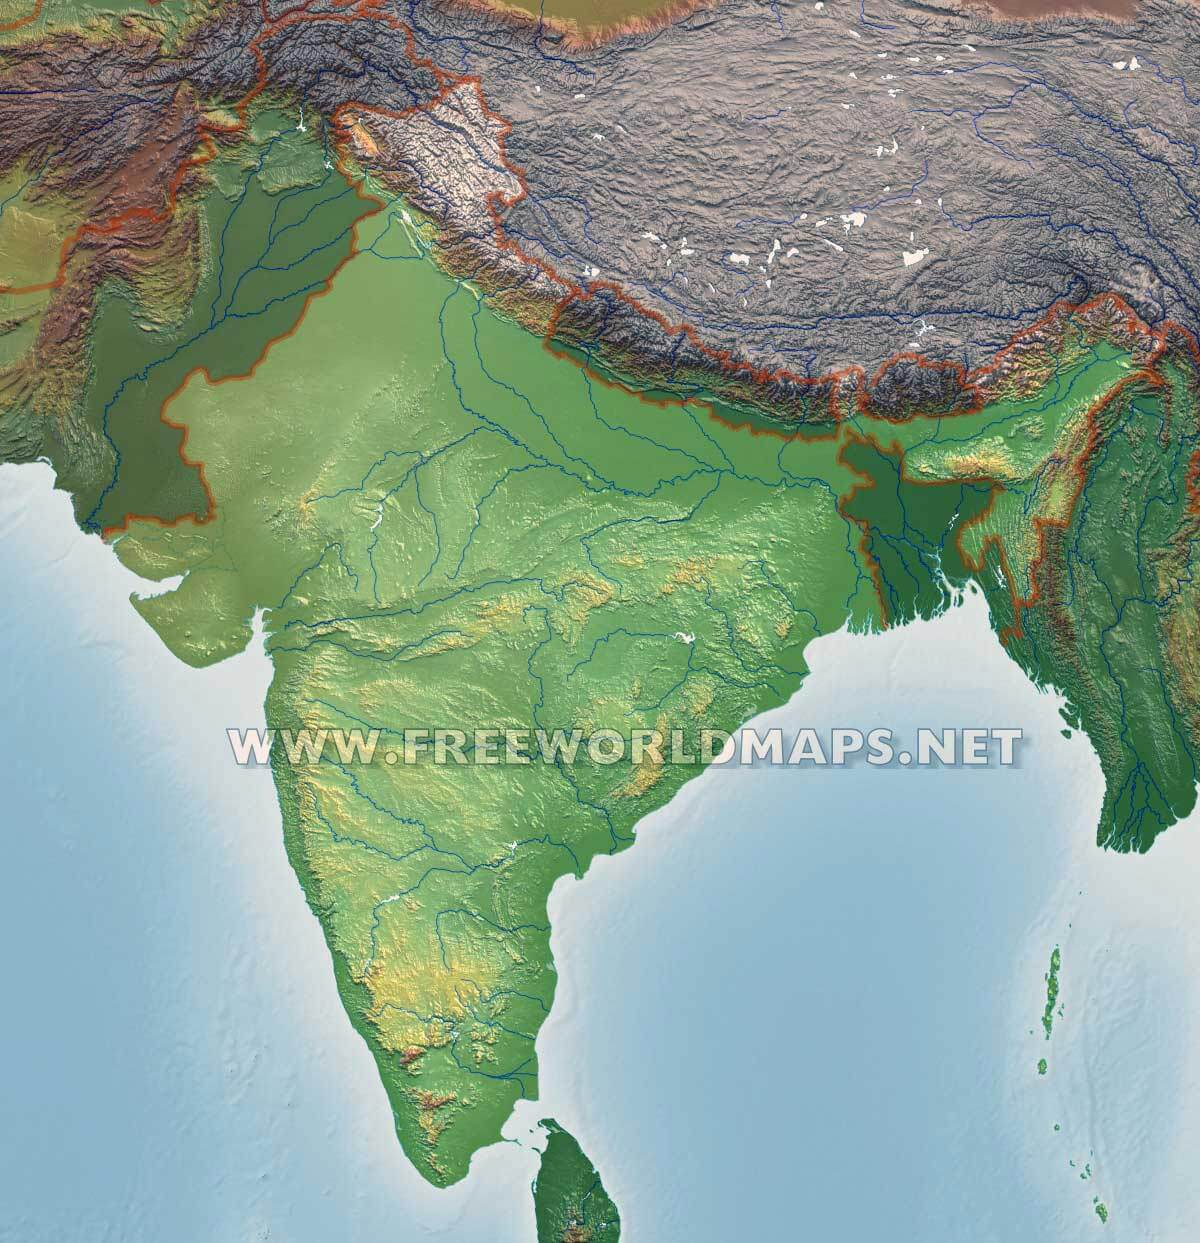 India Physical Map on map of india now, map of the country of india, map of africa, map of china and bordering countries, map of india and sri lanka, world map with countries, map of japan and neighboring countries, map of nepal and tibet, map of austria with surrounding countries, map of asia, map of iran and neighboring countries, map of india and tibet, map of ancient india, map of india with cities, map of malaysia and singapore, map of india and saudi arabia, map of countries surrounding china, map of india and singapore, map of india states, map of india and mountains,